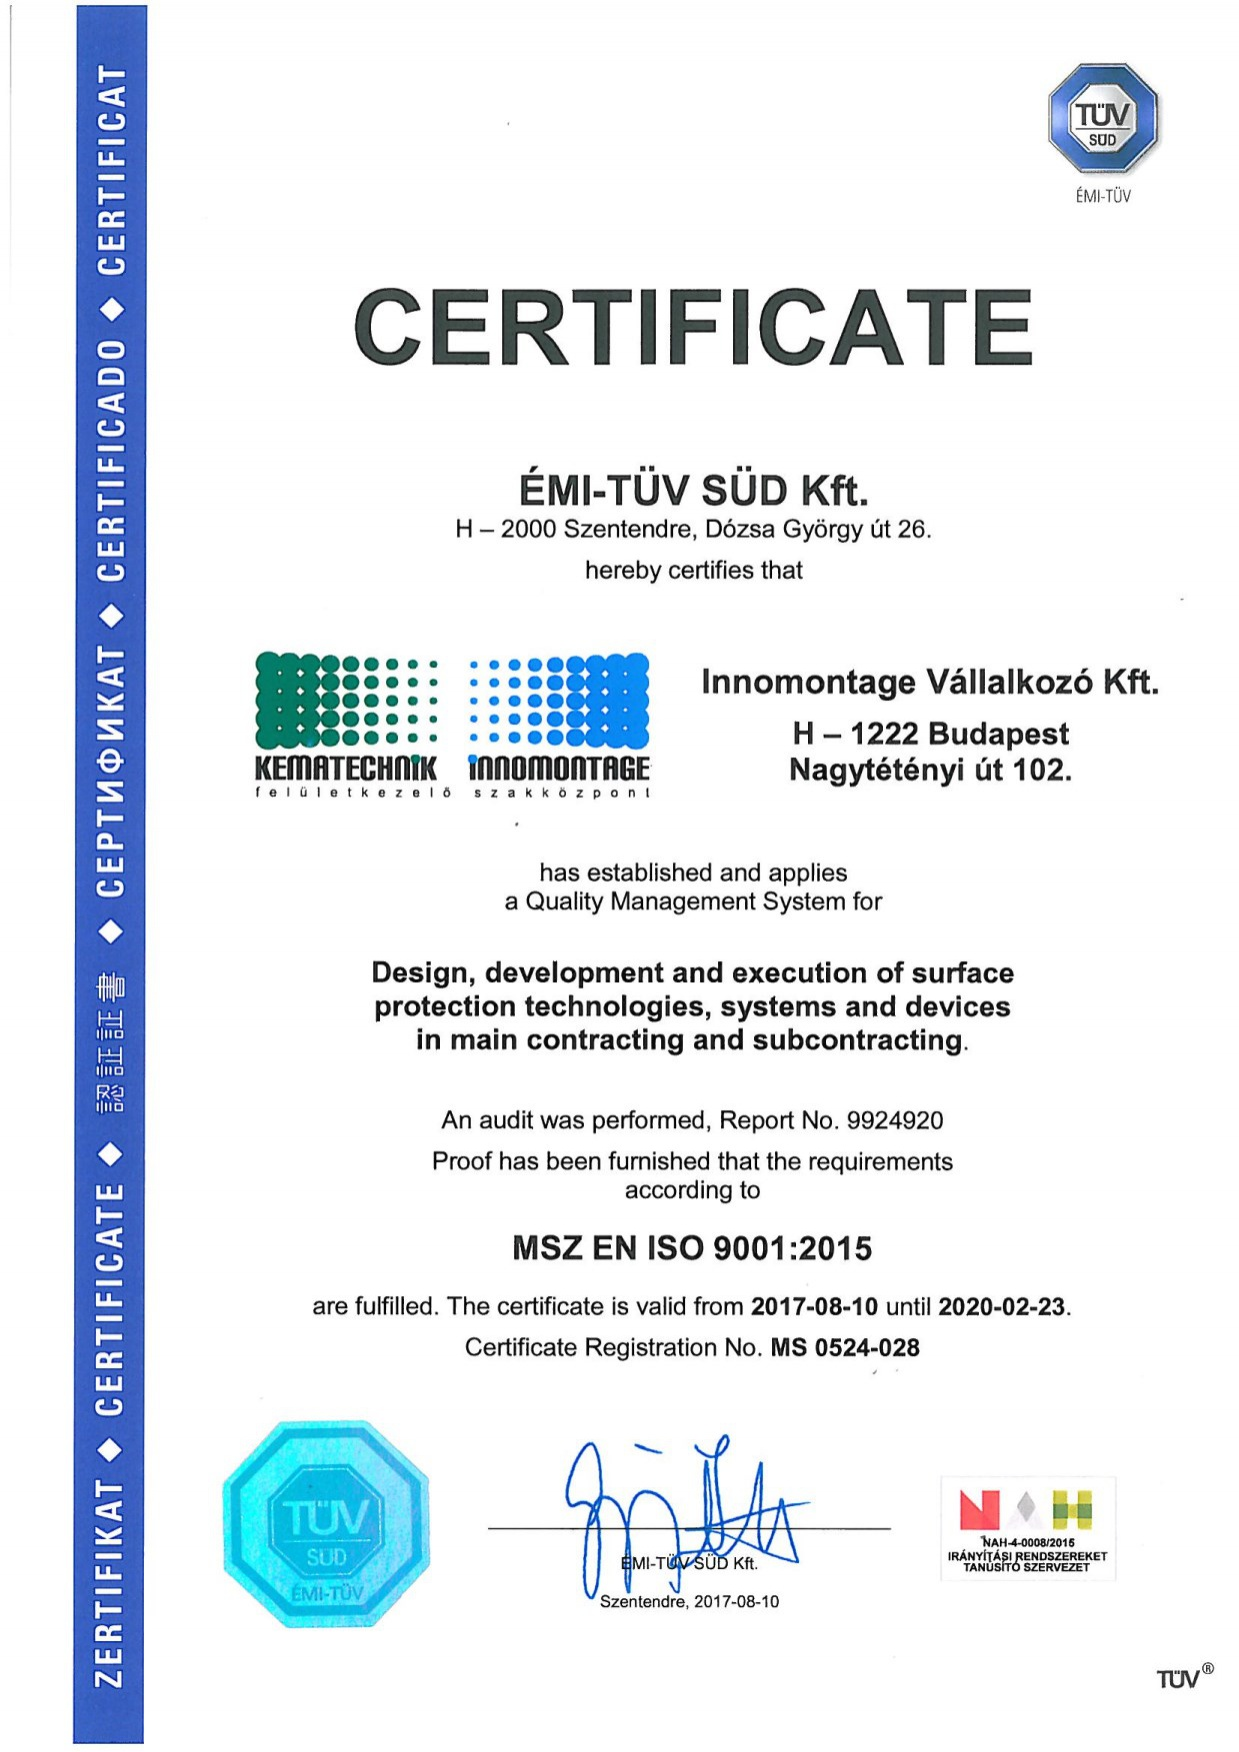 innomontage-certificate-eng_1753